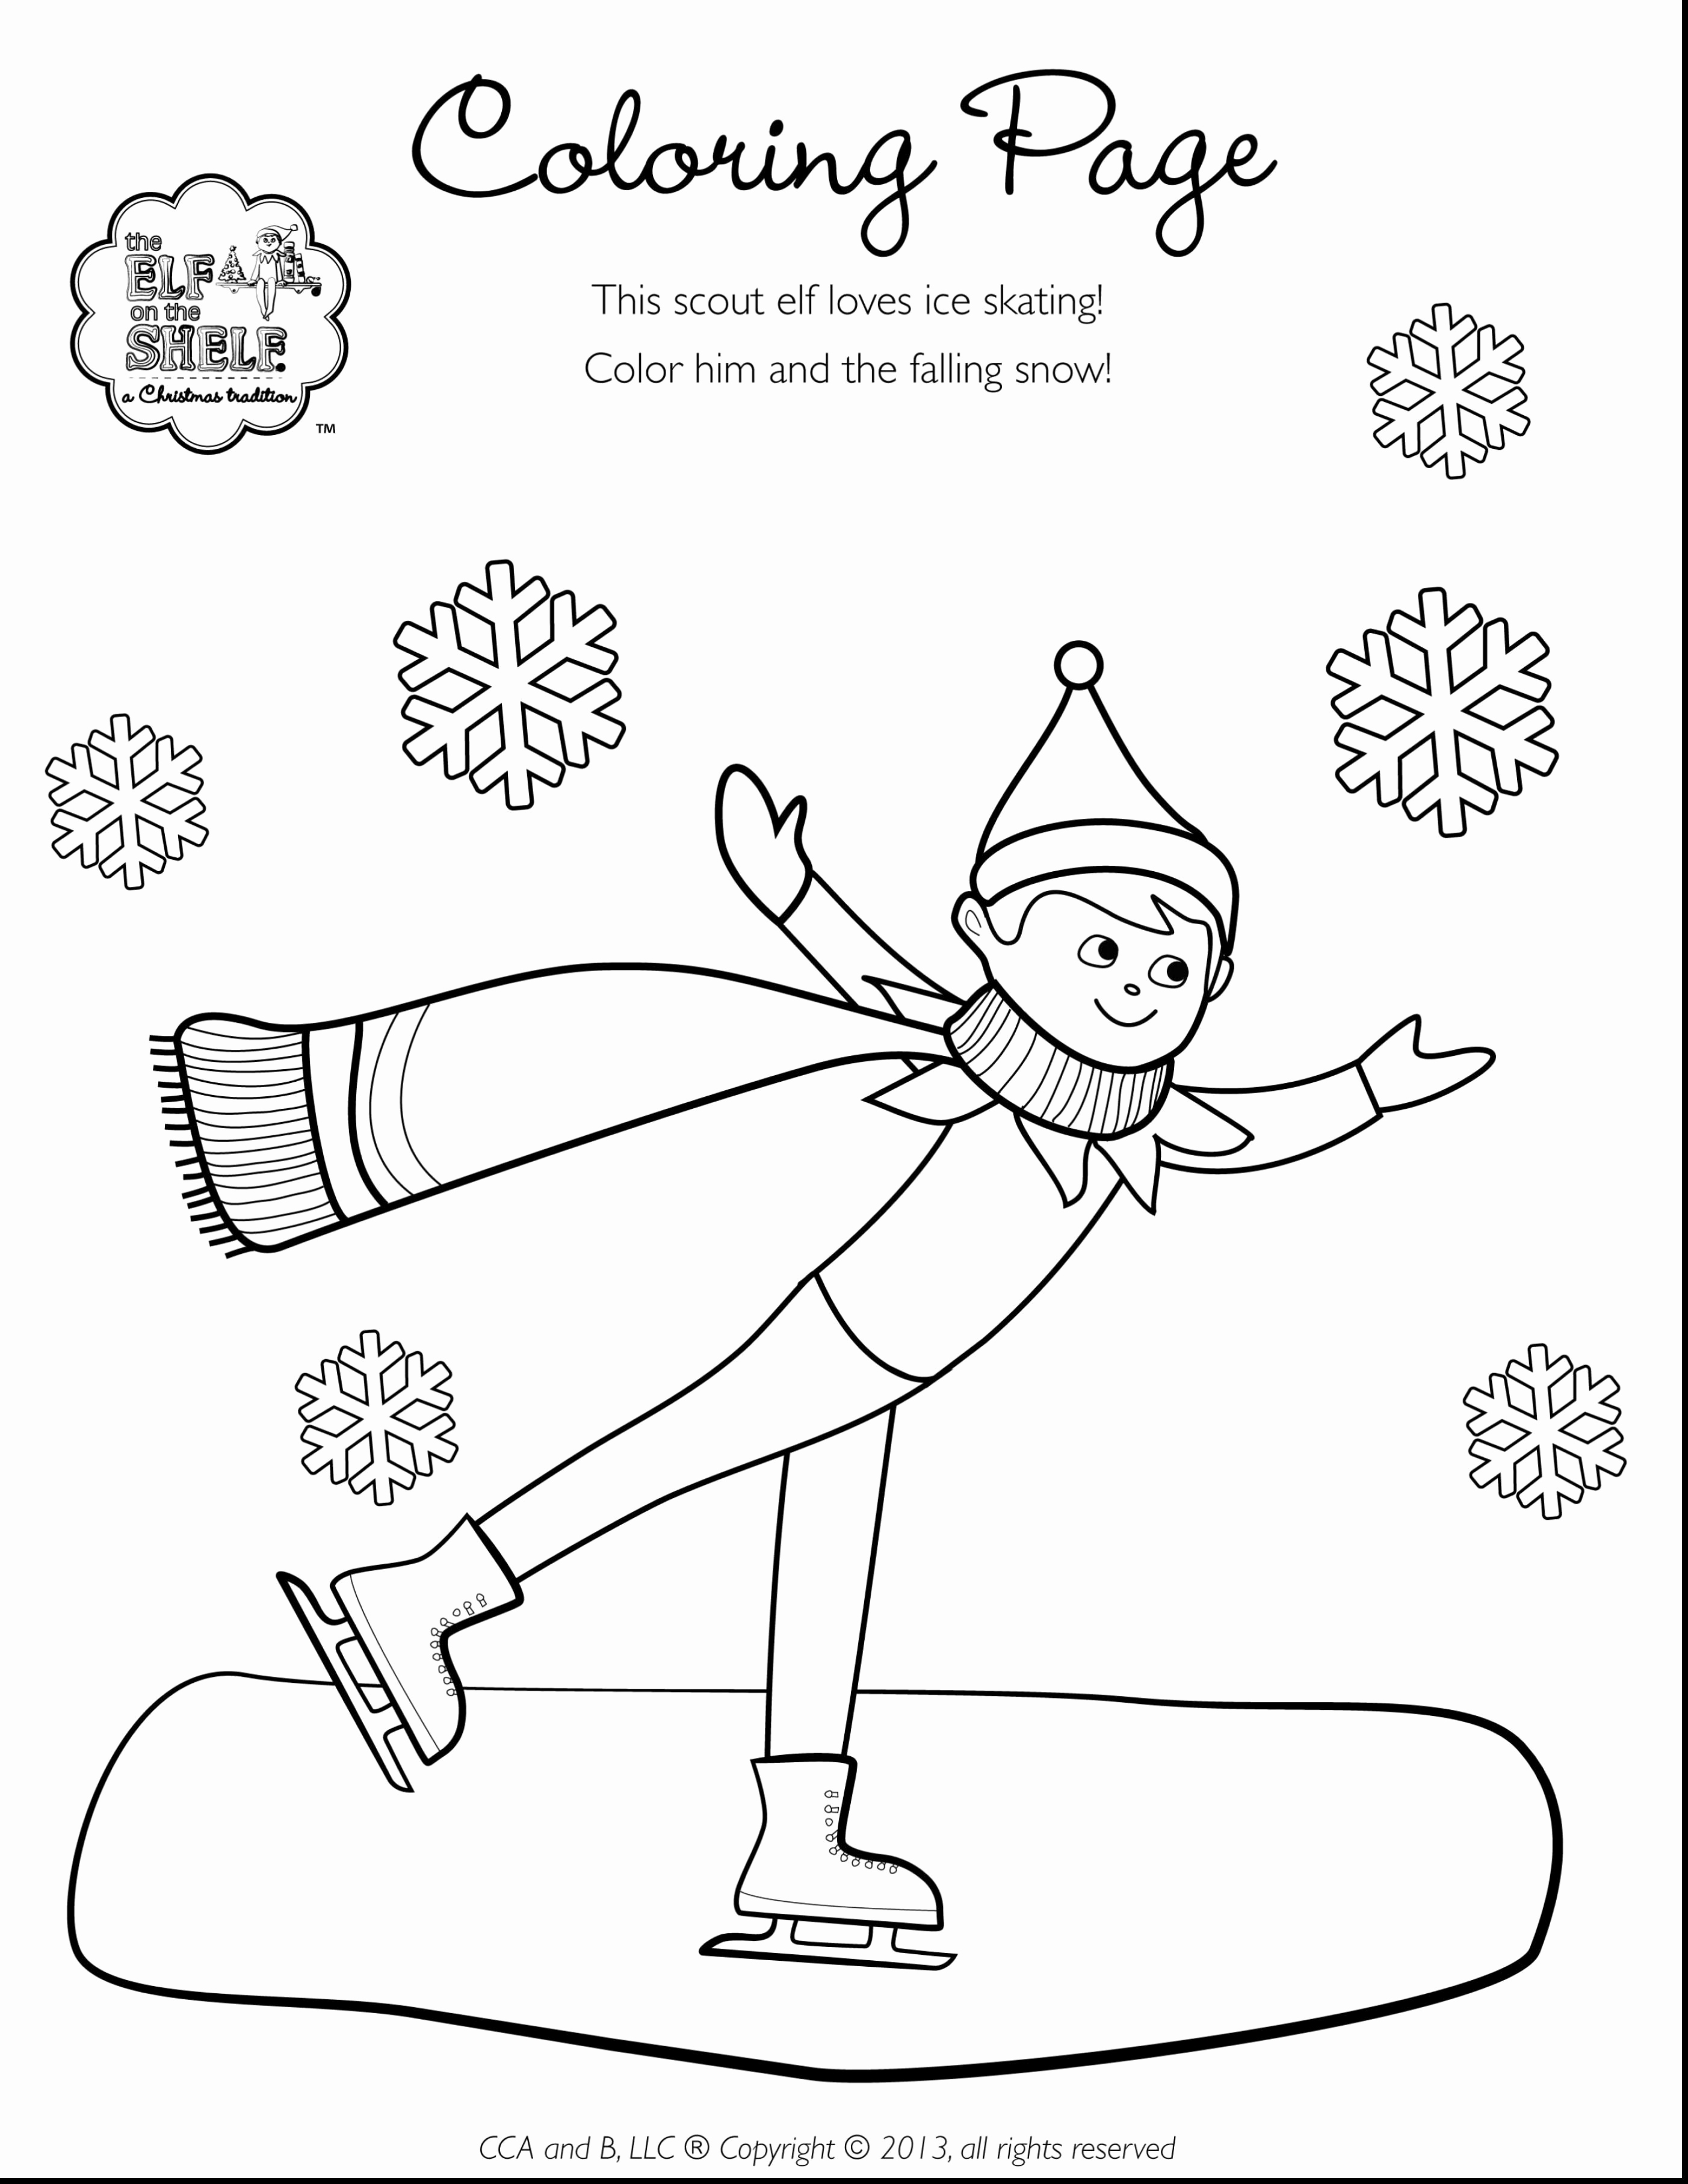 Elf Coloring Pages Printable Elf On The Shelf Coloring Pages At Getdrawings Free For